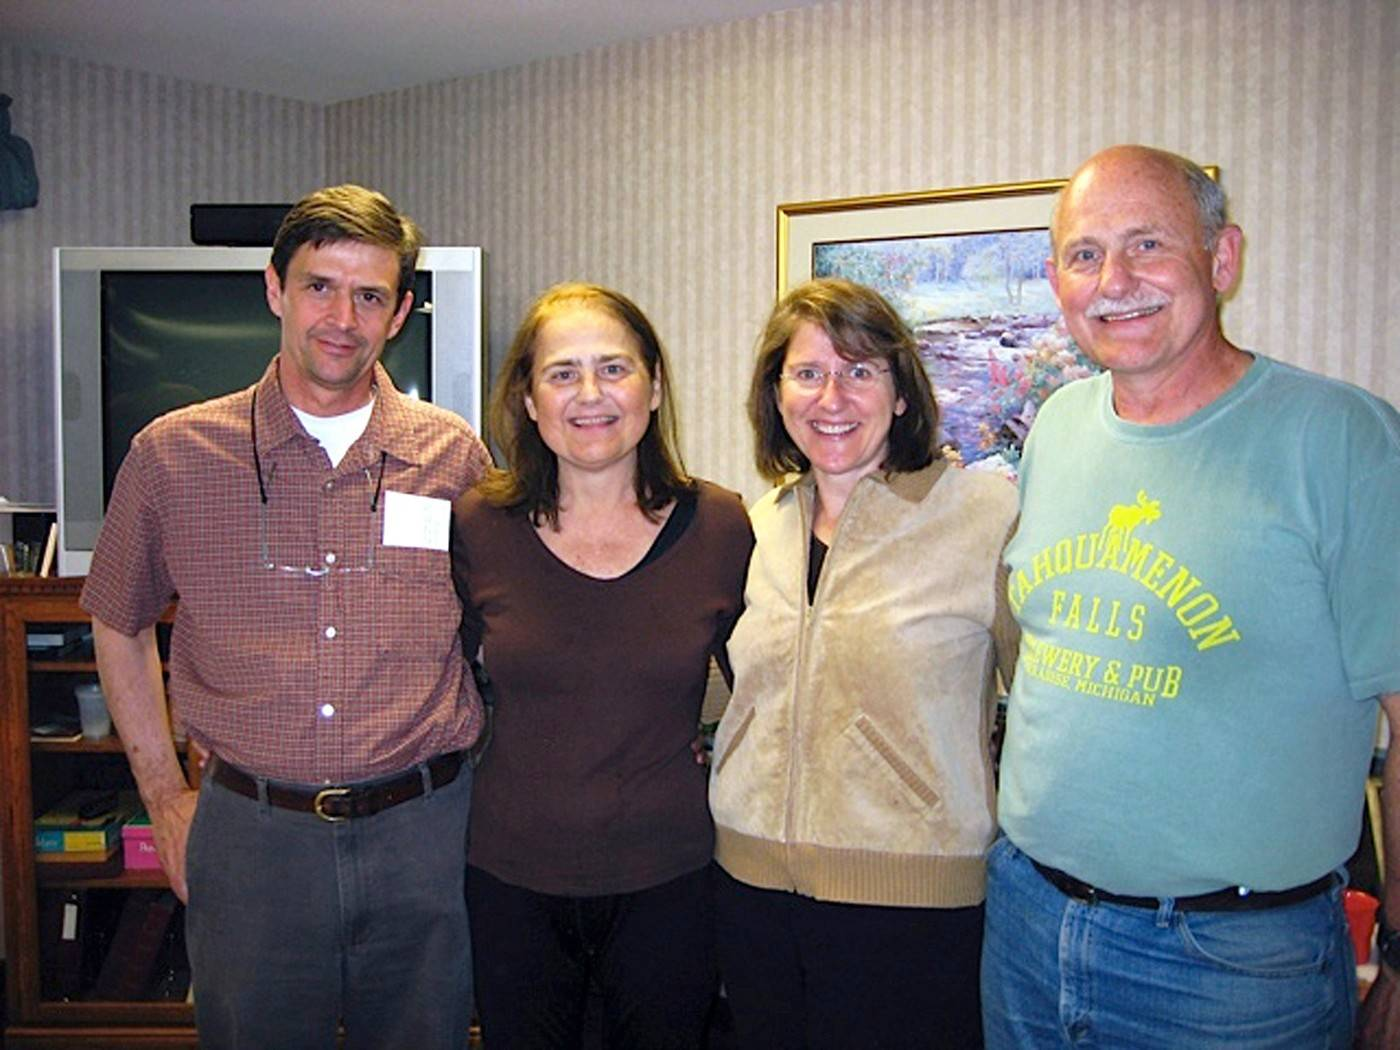 Irene Schneider in 2010 with her three donors. Brother-in-law Duane Wepking (donor 2009) is at left; next is Schneider and her siblings, Kate Braus (donor 1994) and Joe Schneider (donor 1984).